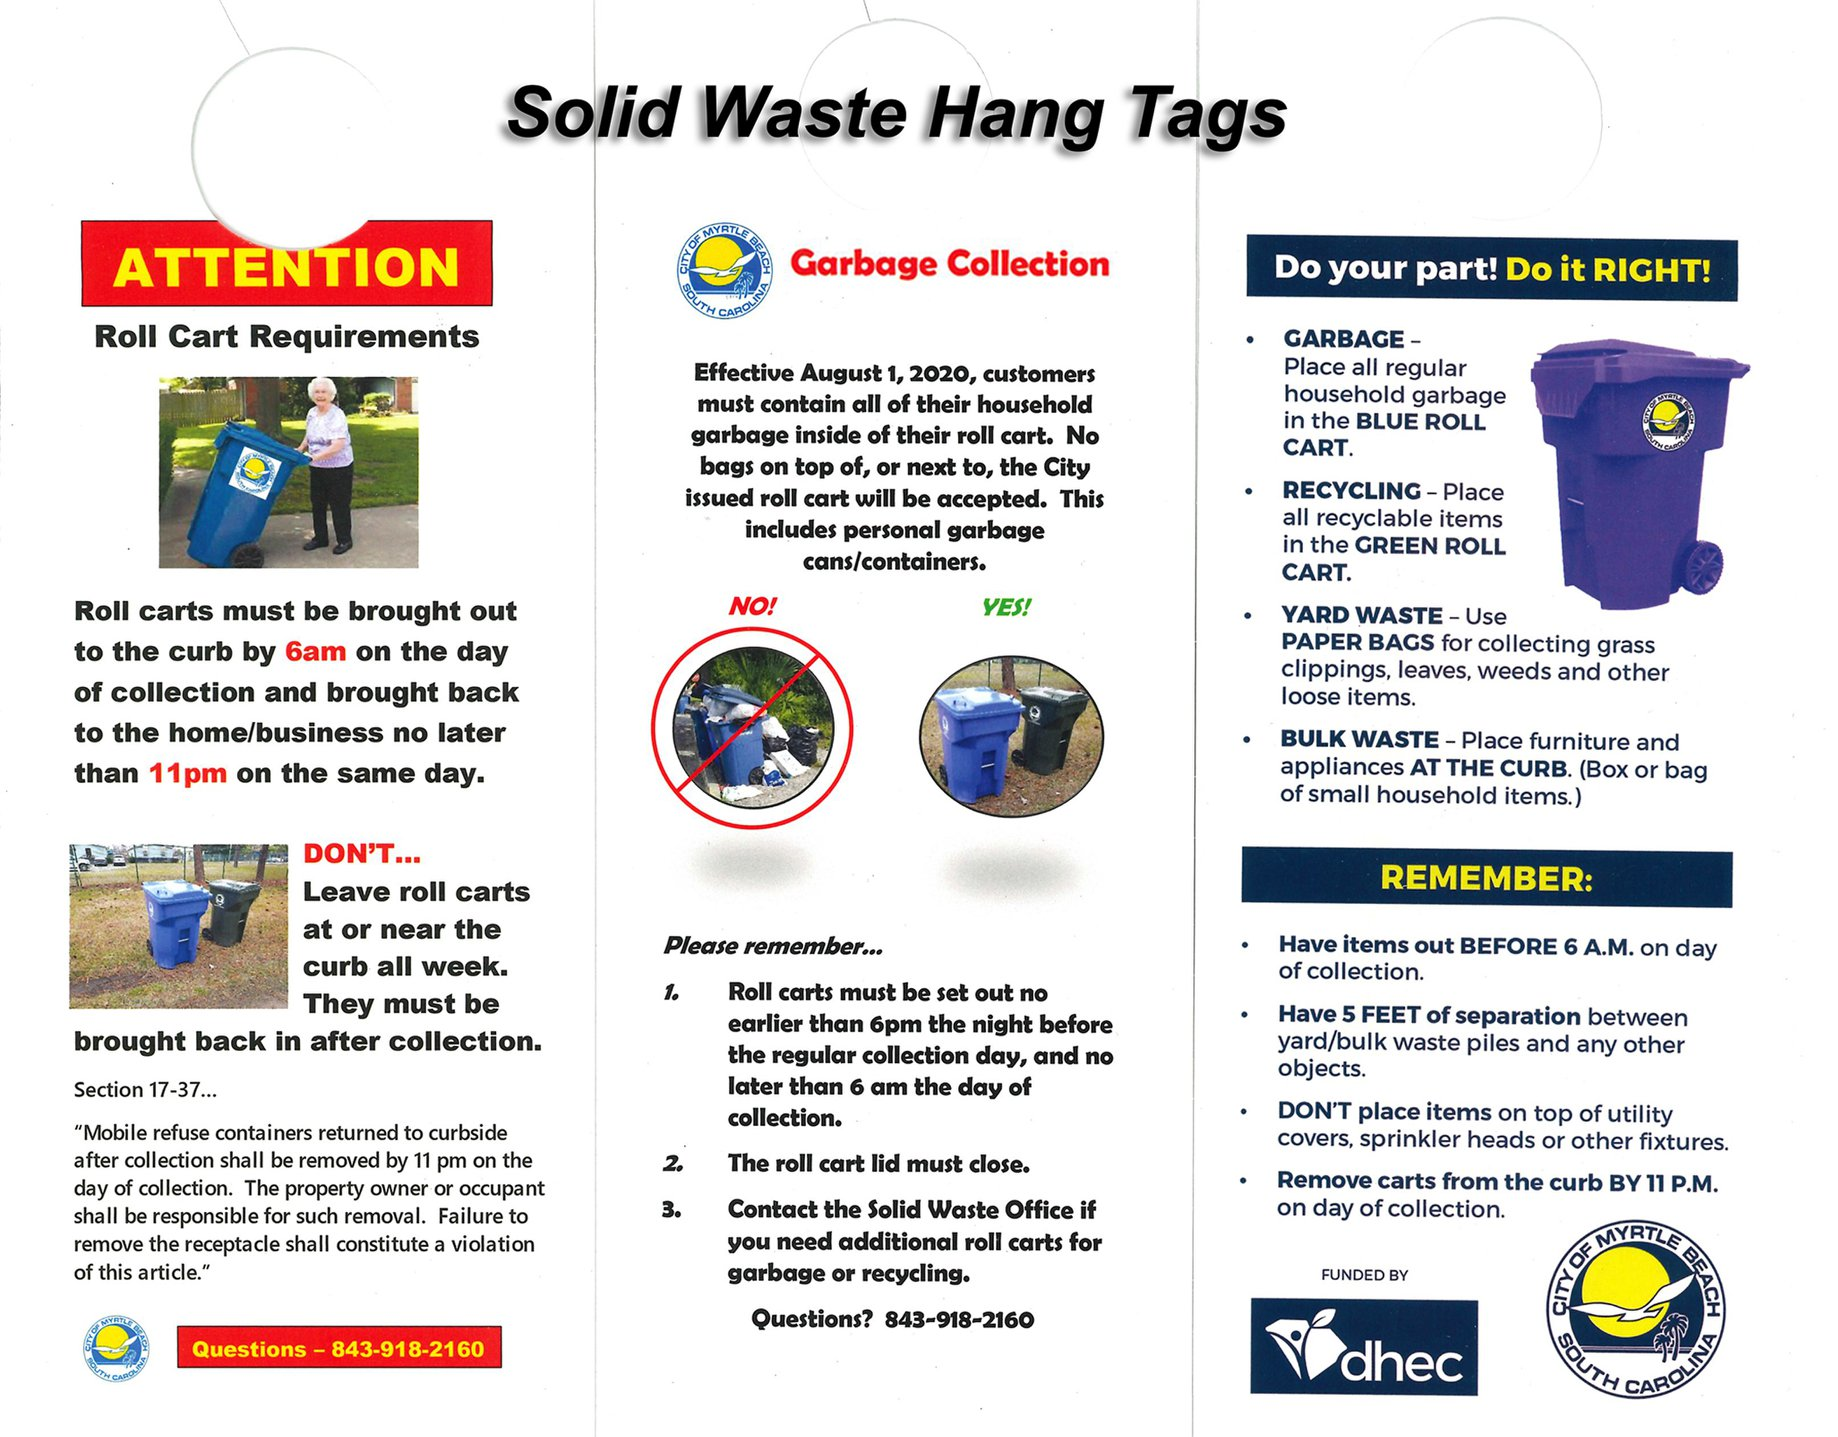 Solid Waste Hang tag 2020